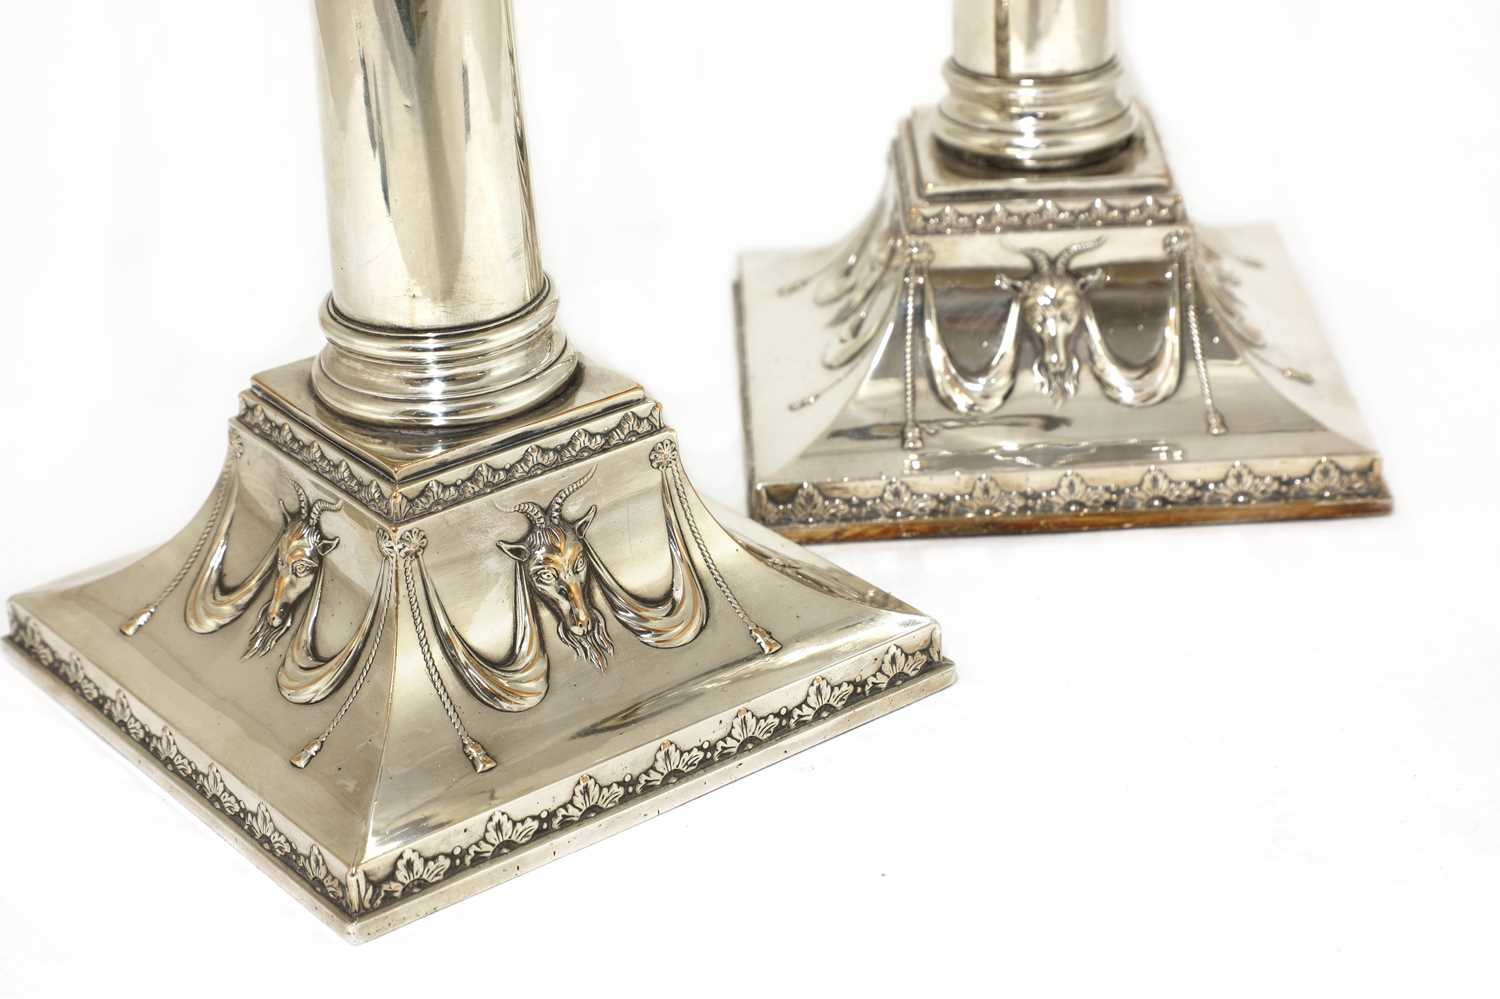 A pair of Edwardian silver-plated neoclassical candlesticks, - Image 3 of 5